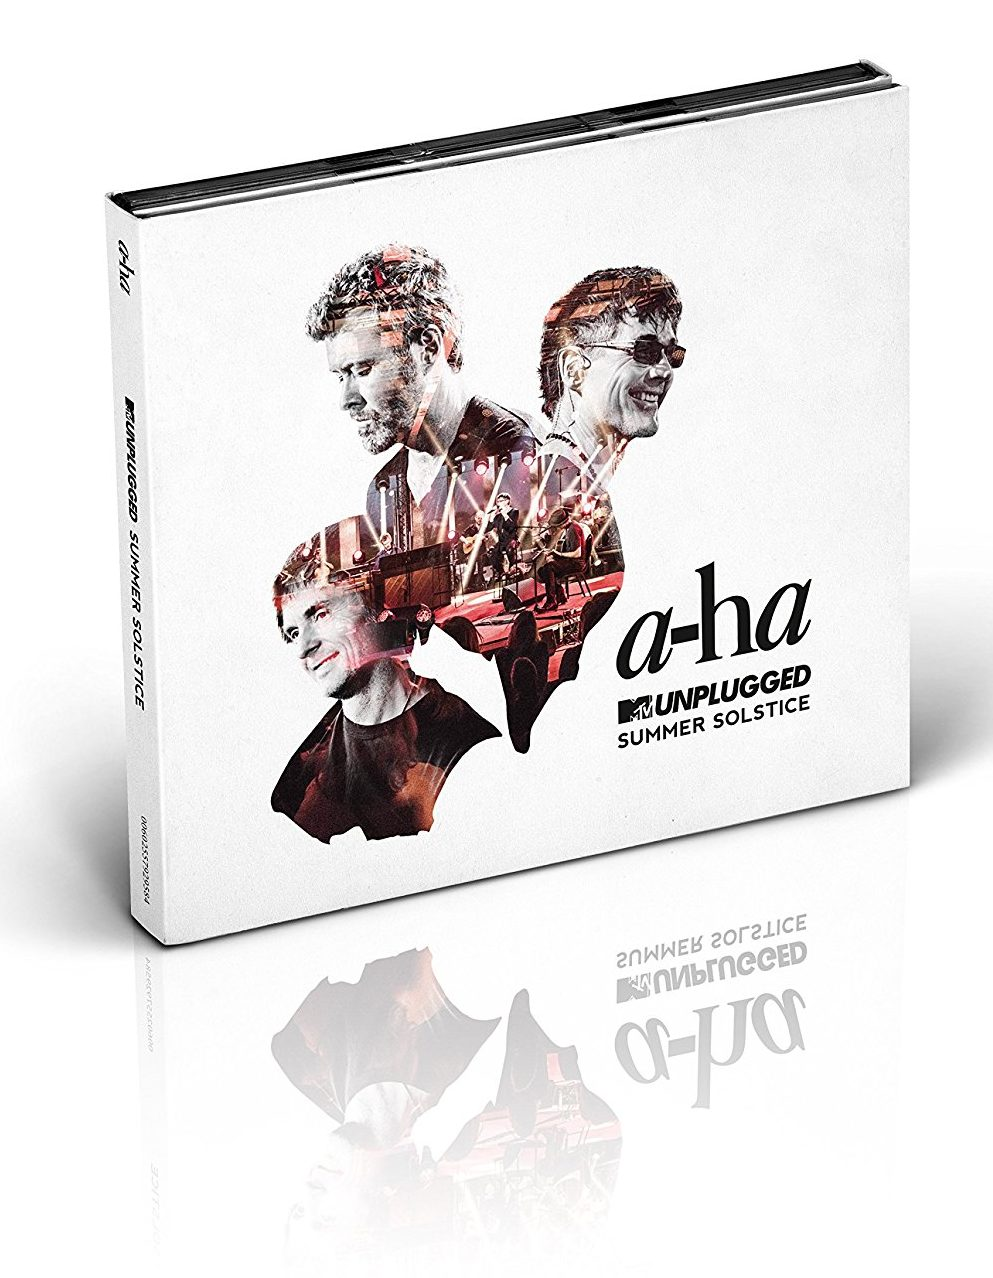 a-ha / MTV Unplugged: Summer Solstice - 2CD+Blu-ray